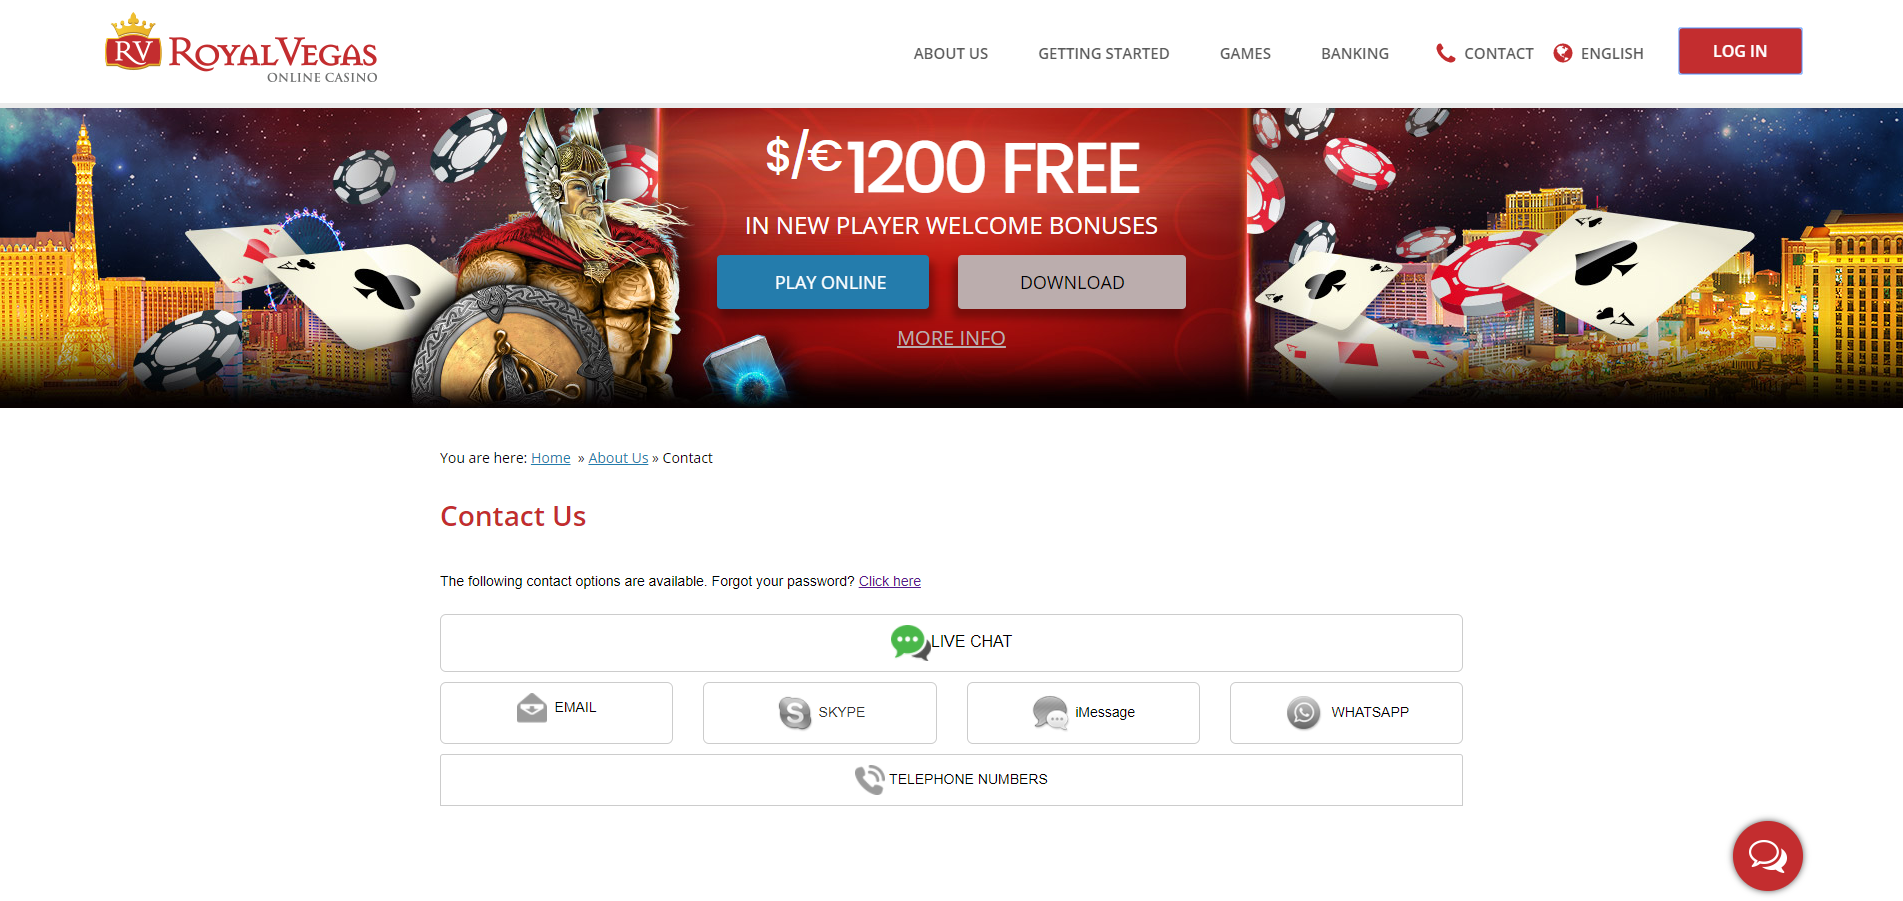 888 casino Online Review With Promotions & Bonuses